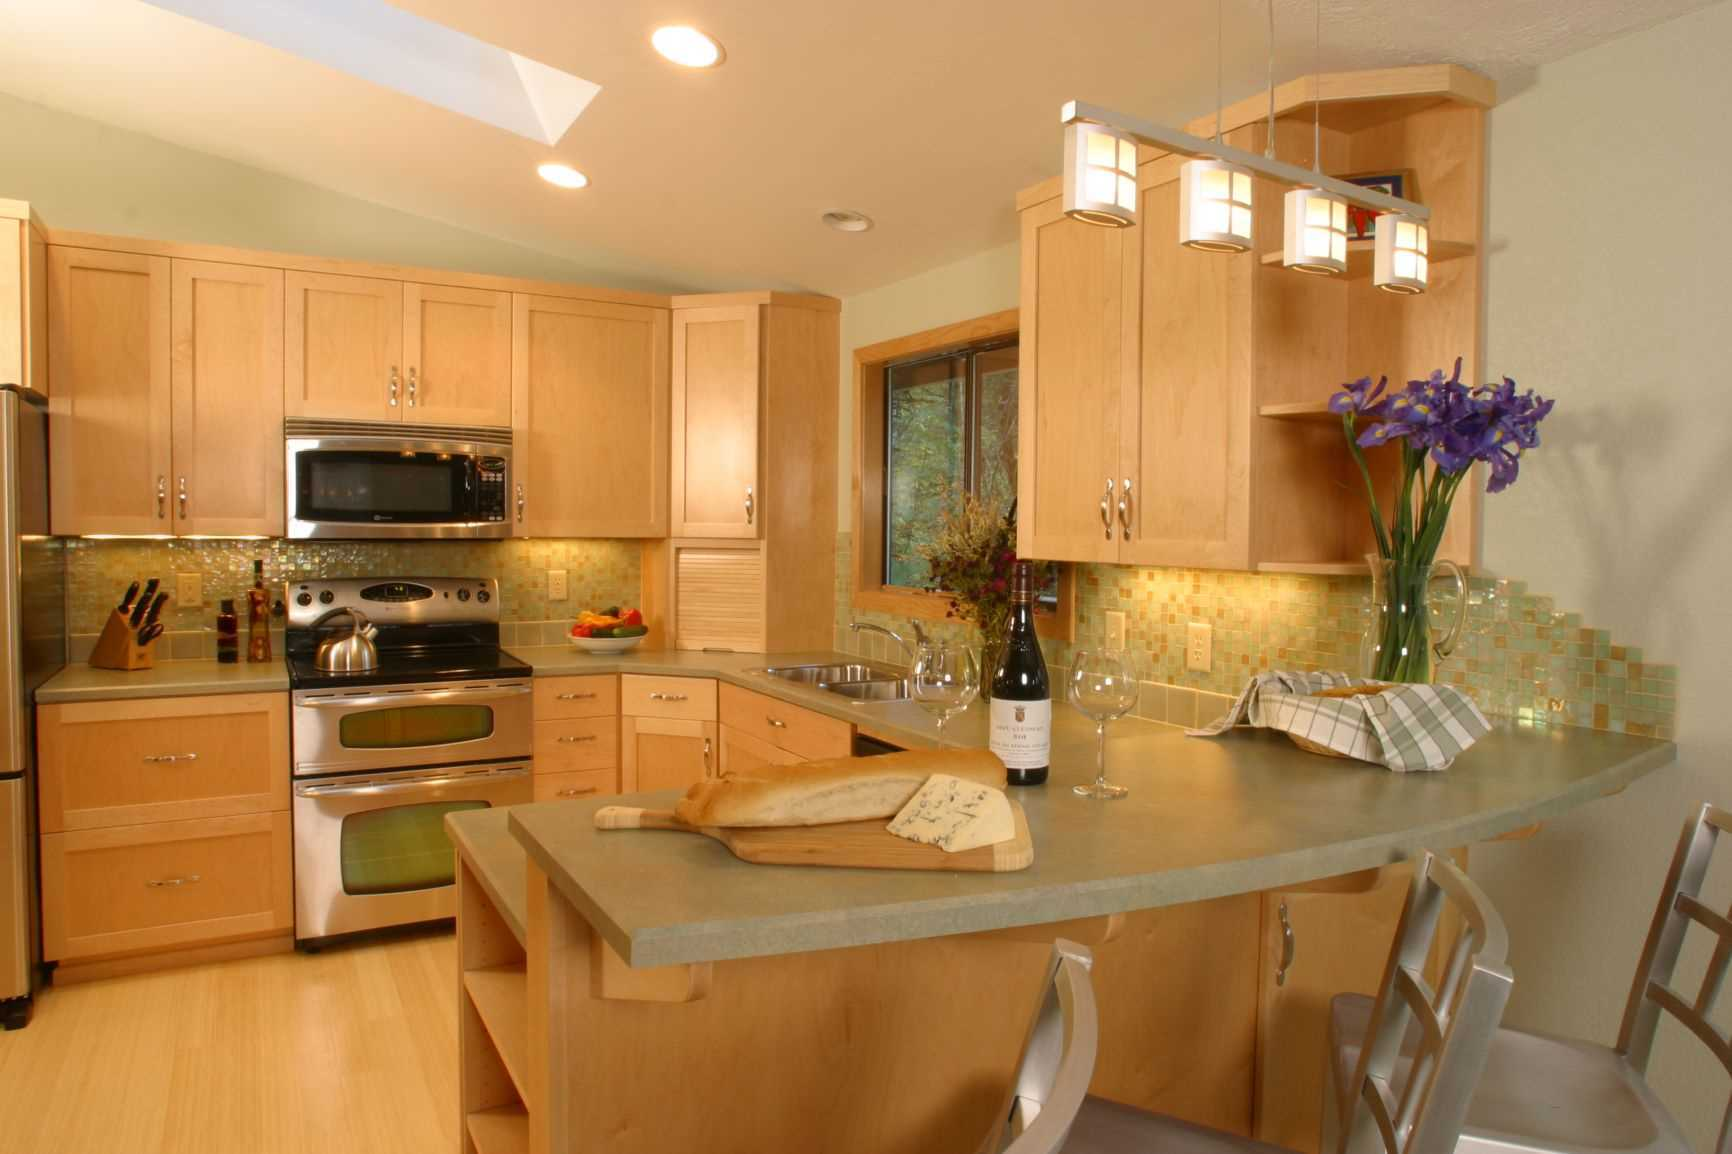 This carefully designed small kitchen remodeled to make the room appear larger and more inviting.